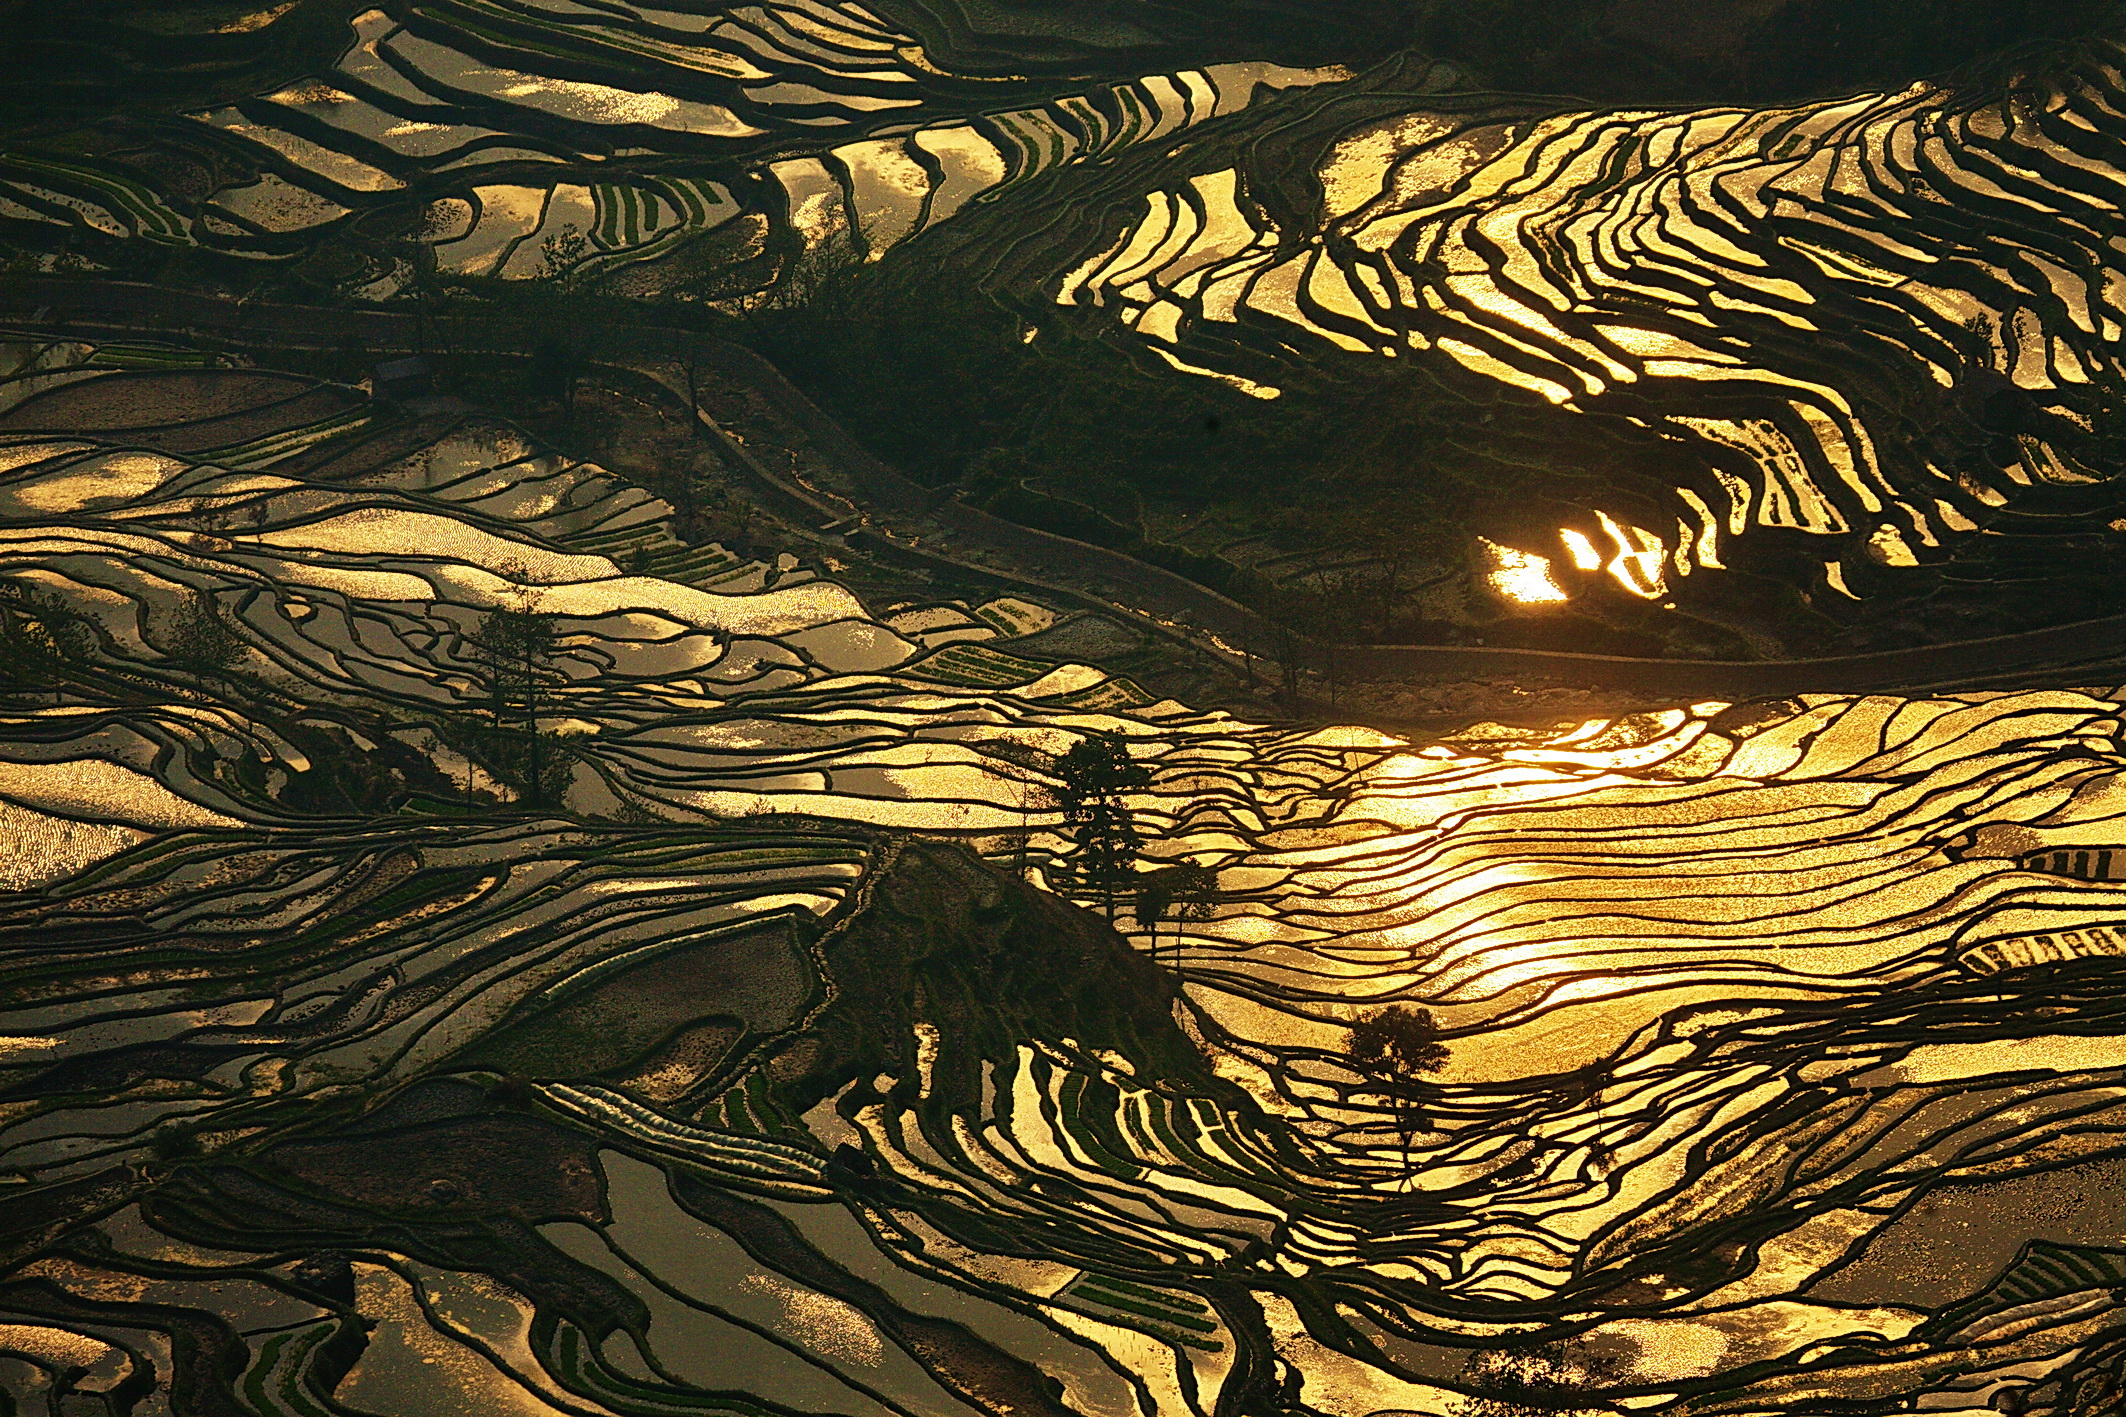 Photo by Mark Levitin, 1st prize Global Landscapes Forum photo competition 2014